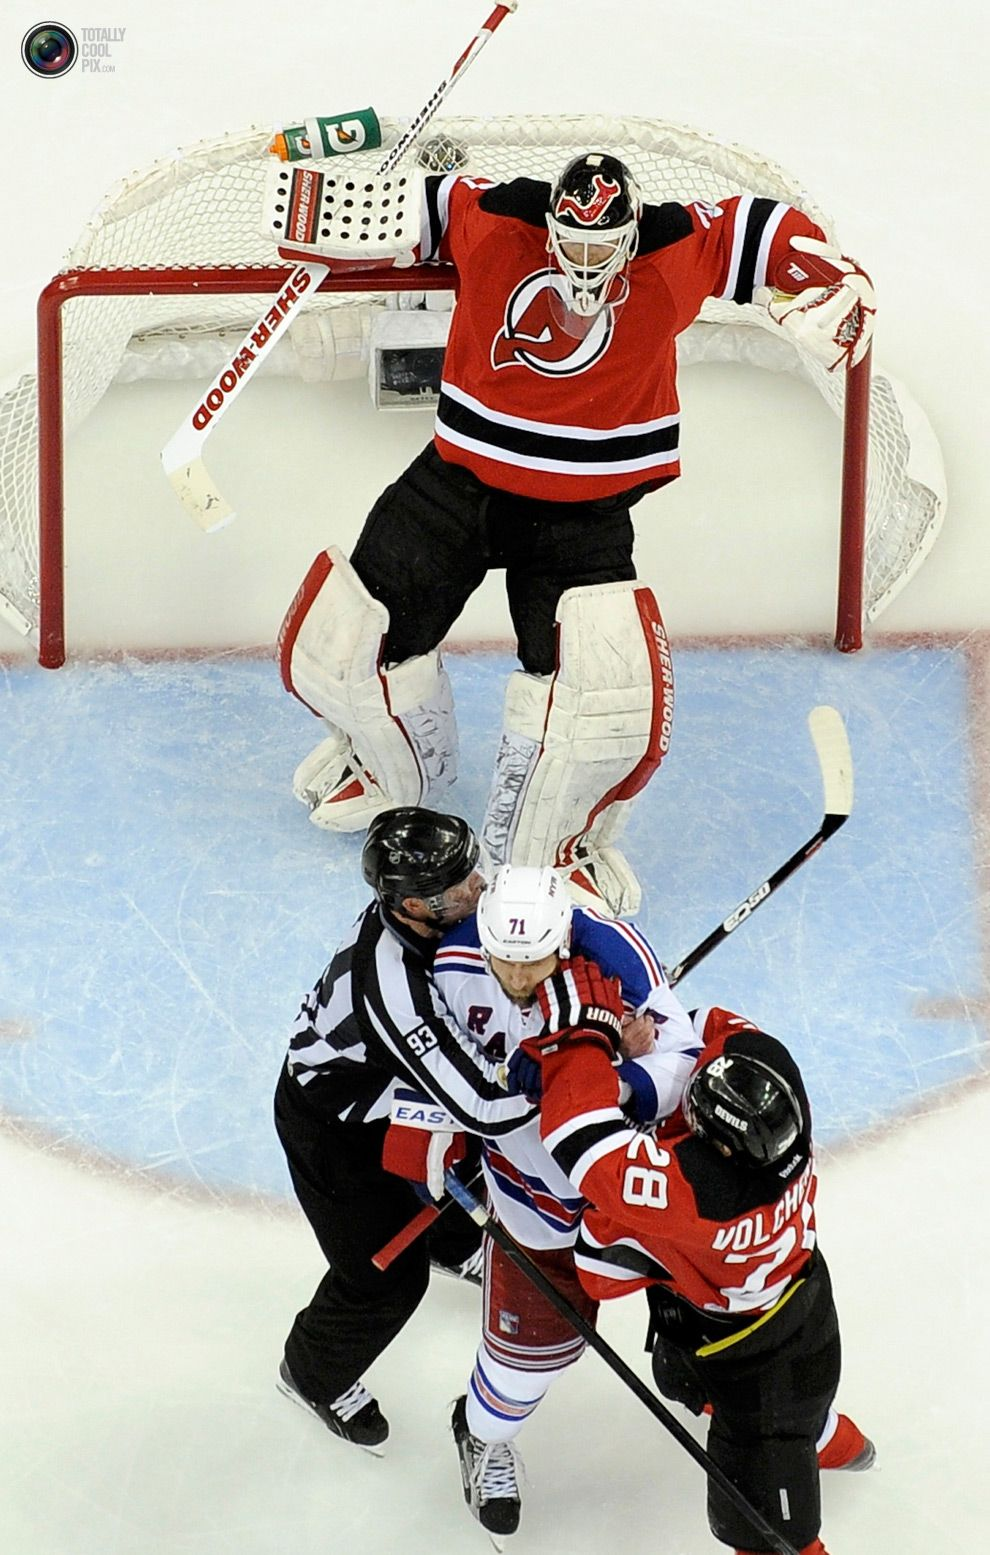 New Jersey Devils Goalie Brodeur Falls Back On His Net After Being Hit By New York Rangers Rupp As He New Jersey Devils Hockey Playoffs National Hockey League